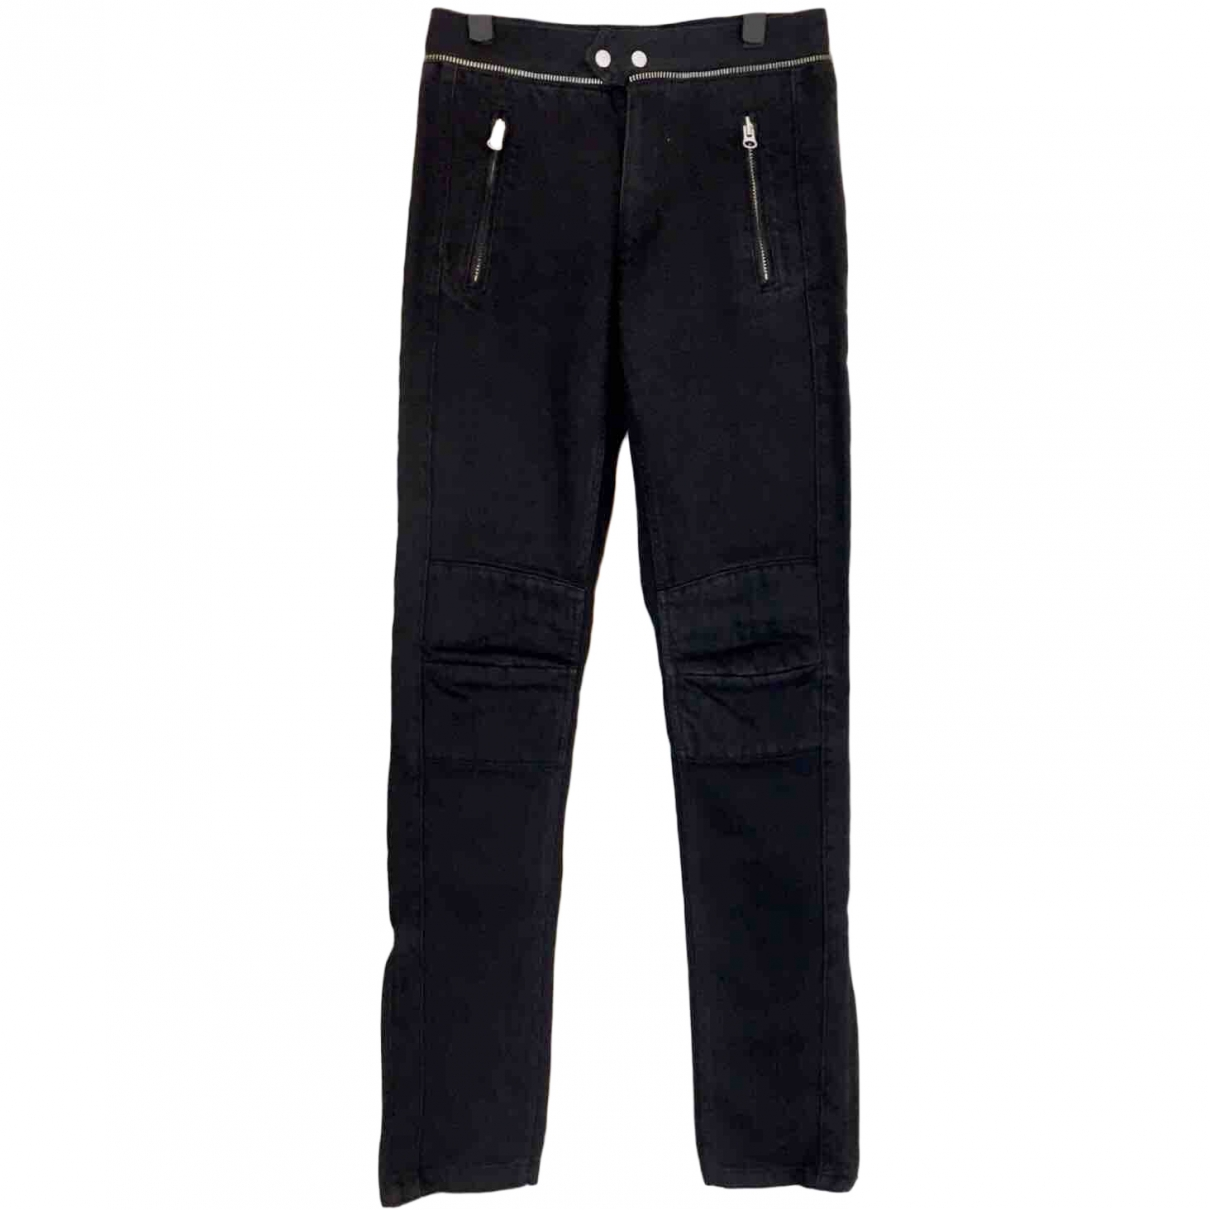 Isabel Marant Pour H&m \N Black Cotton - elasthane Jeans for Men 33 US